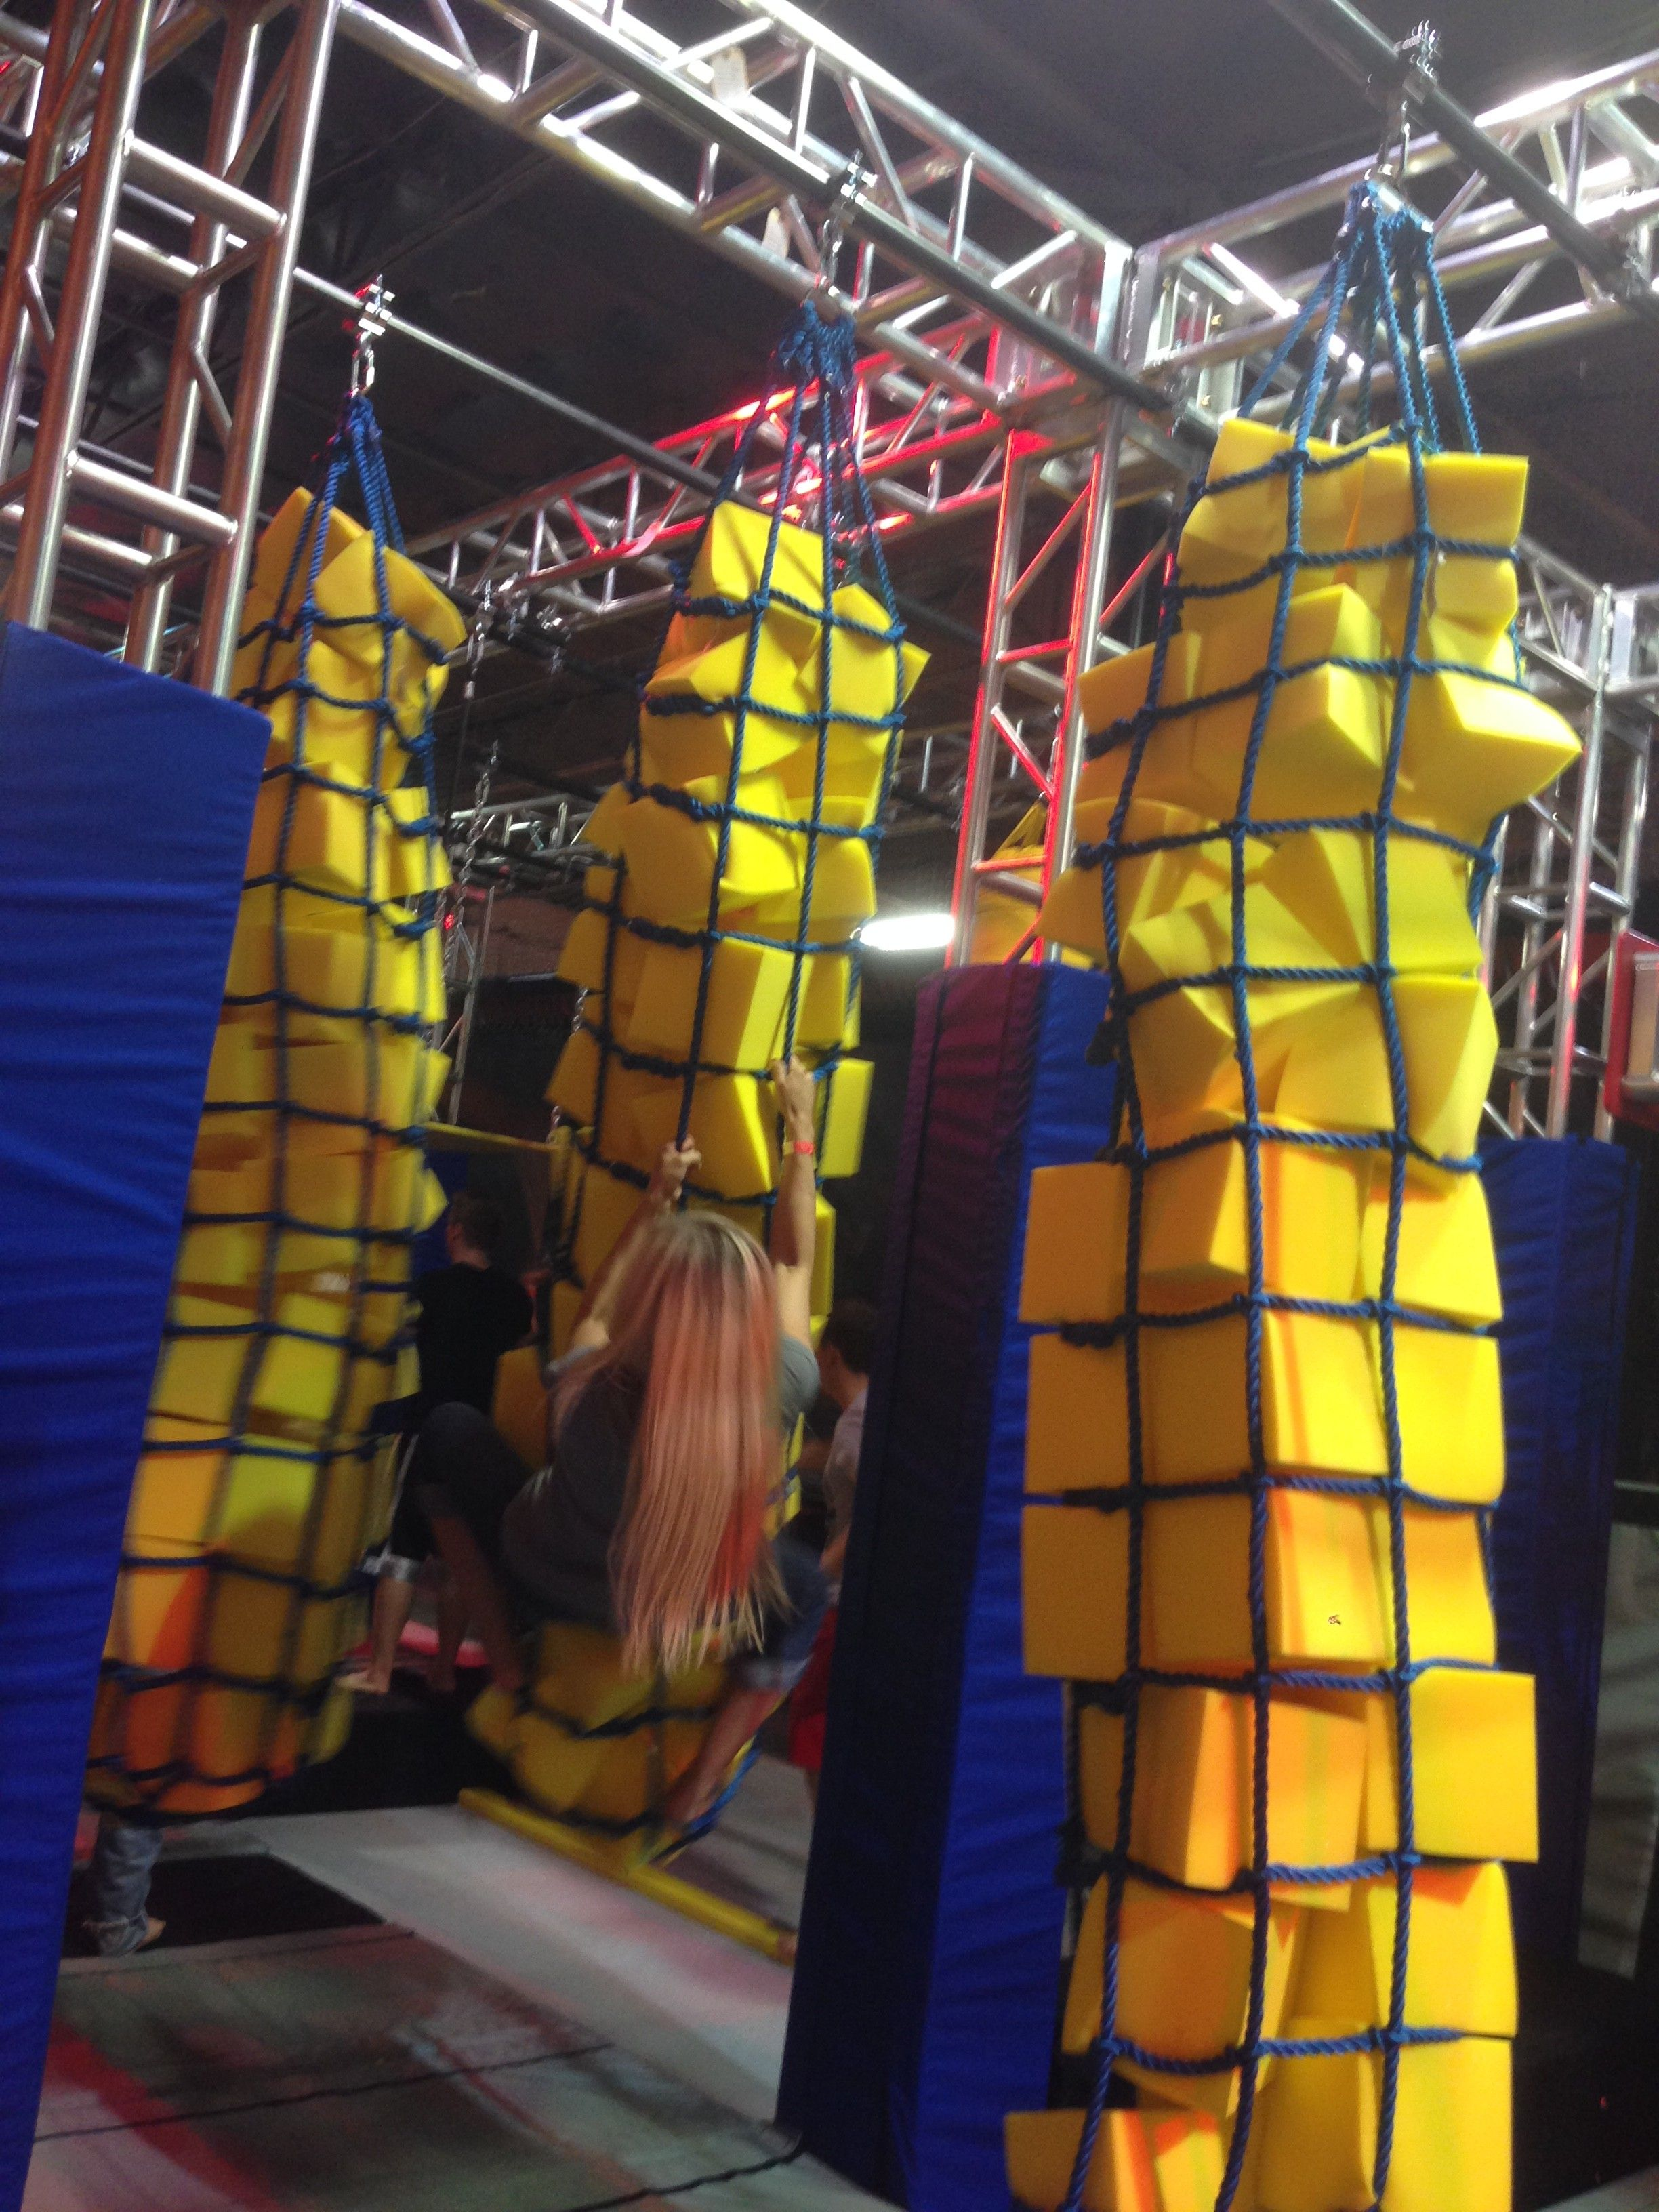 Kid Friendly Family Fun Attractions in Overland Park, KS